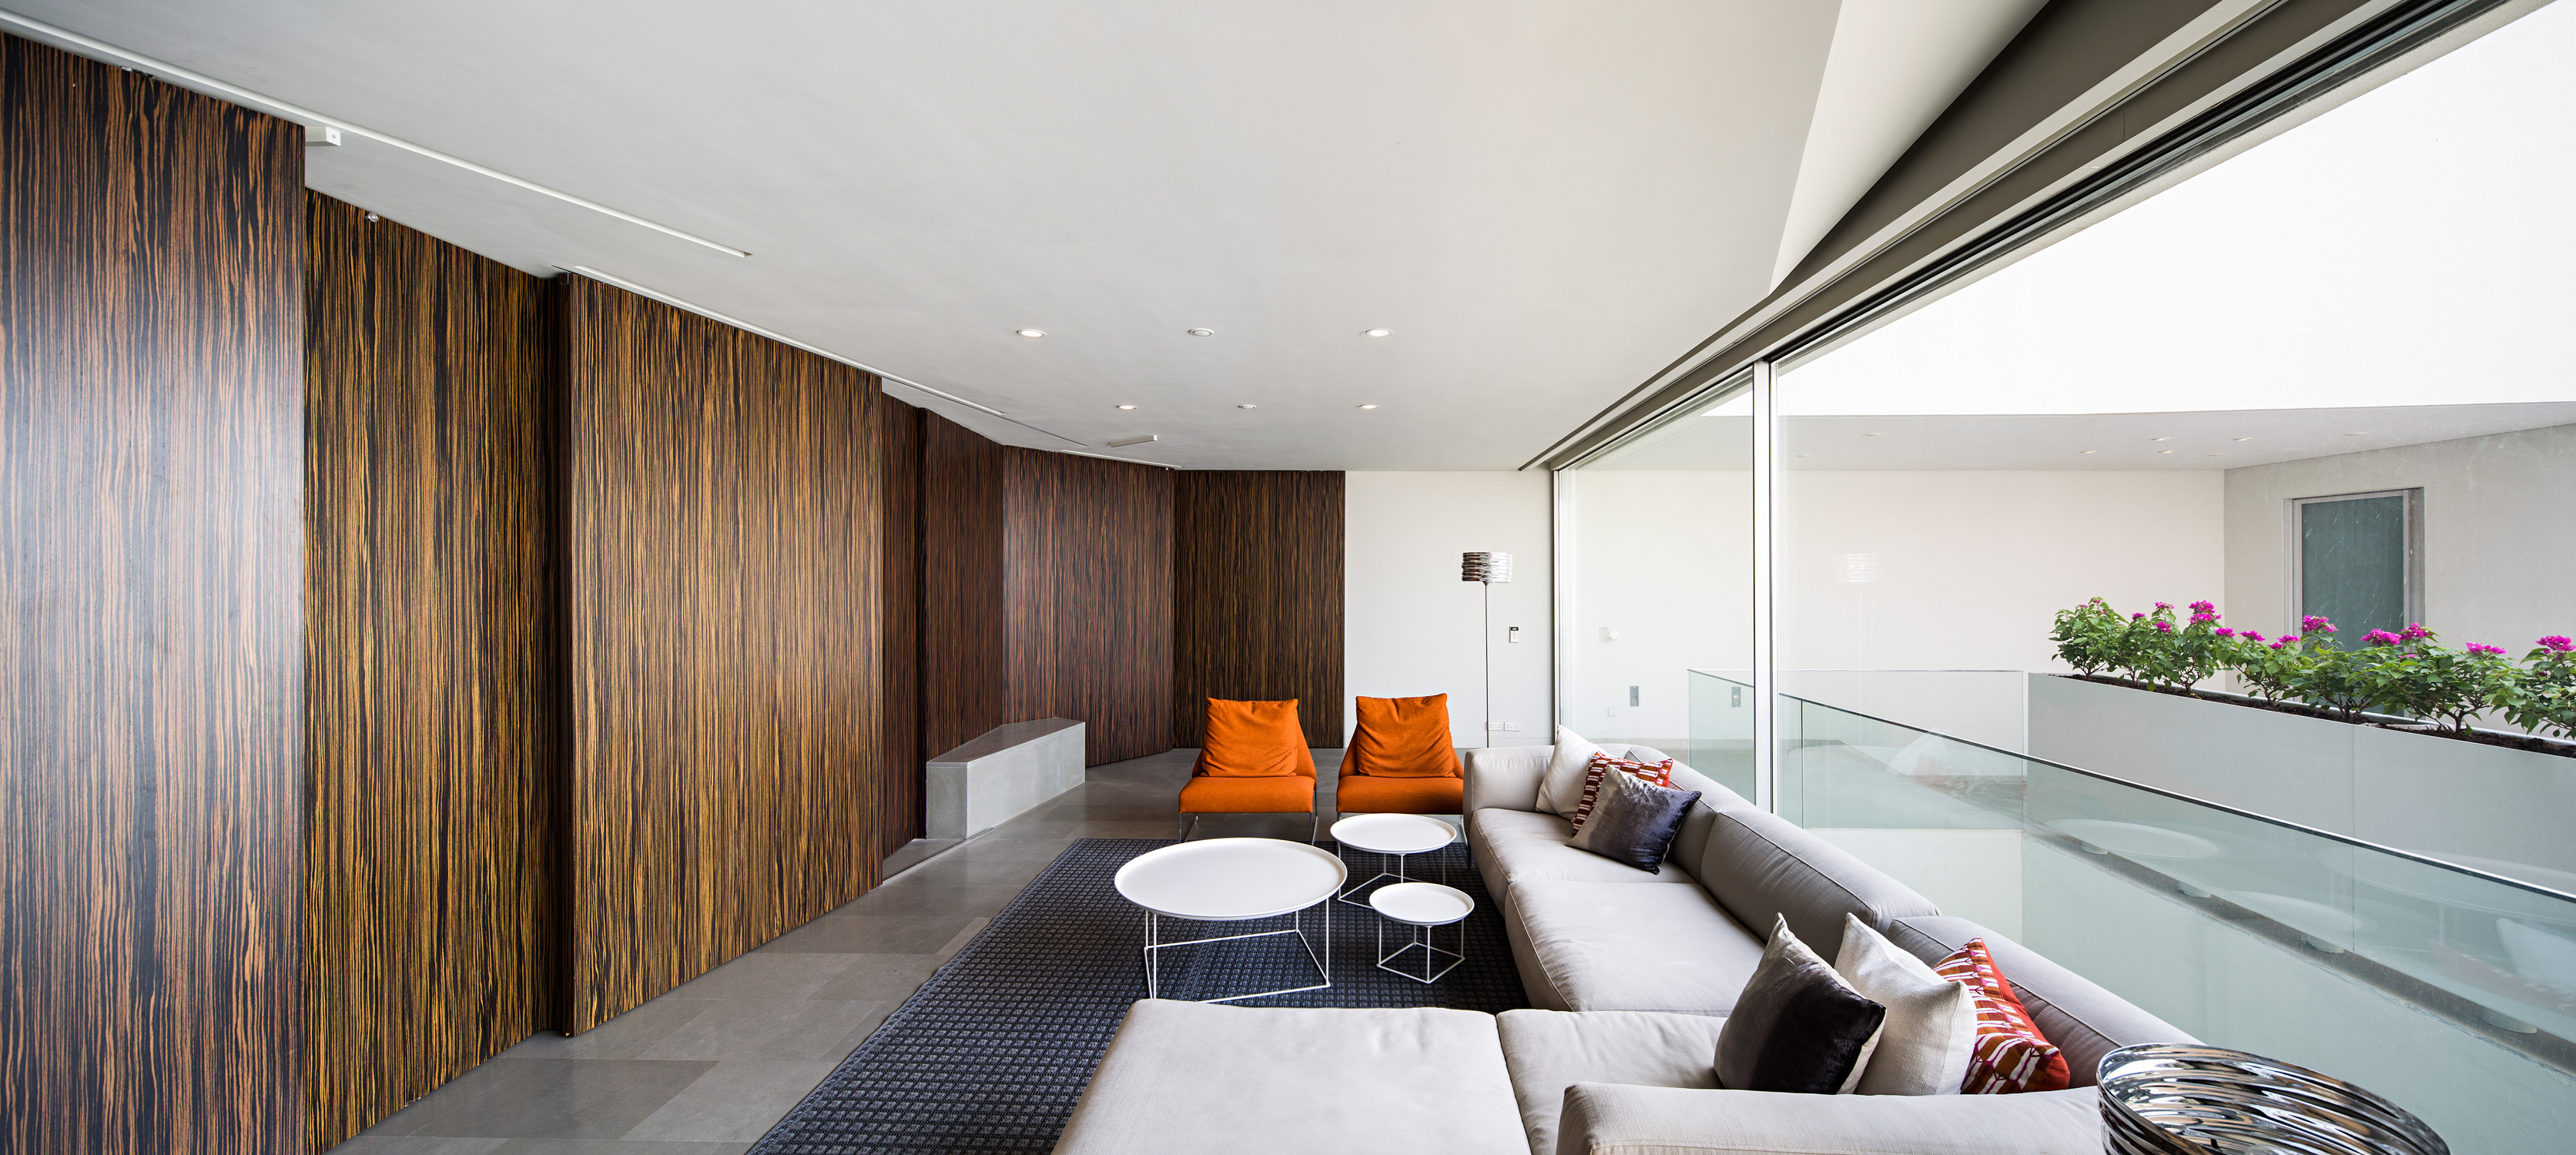 AGI_WALL_HOUSE_KUWAIT_081015_0007